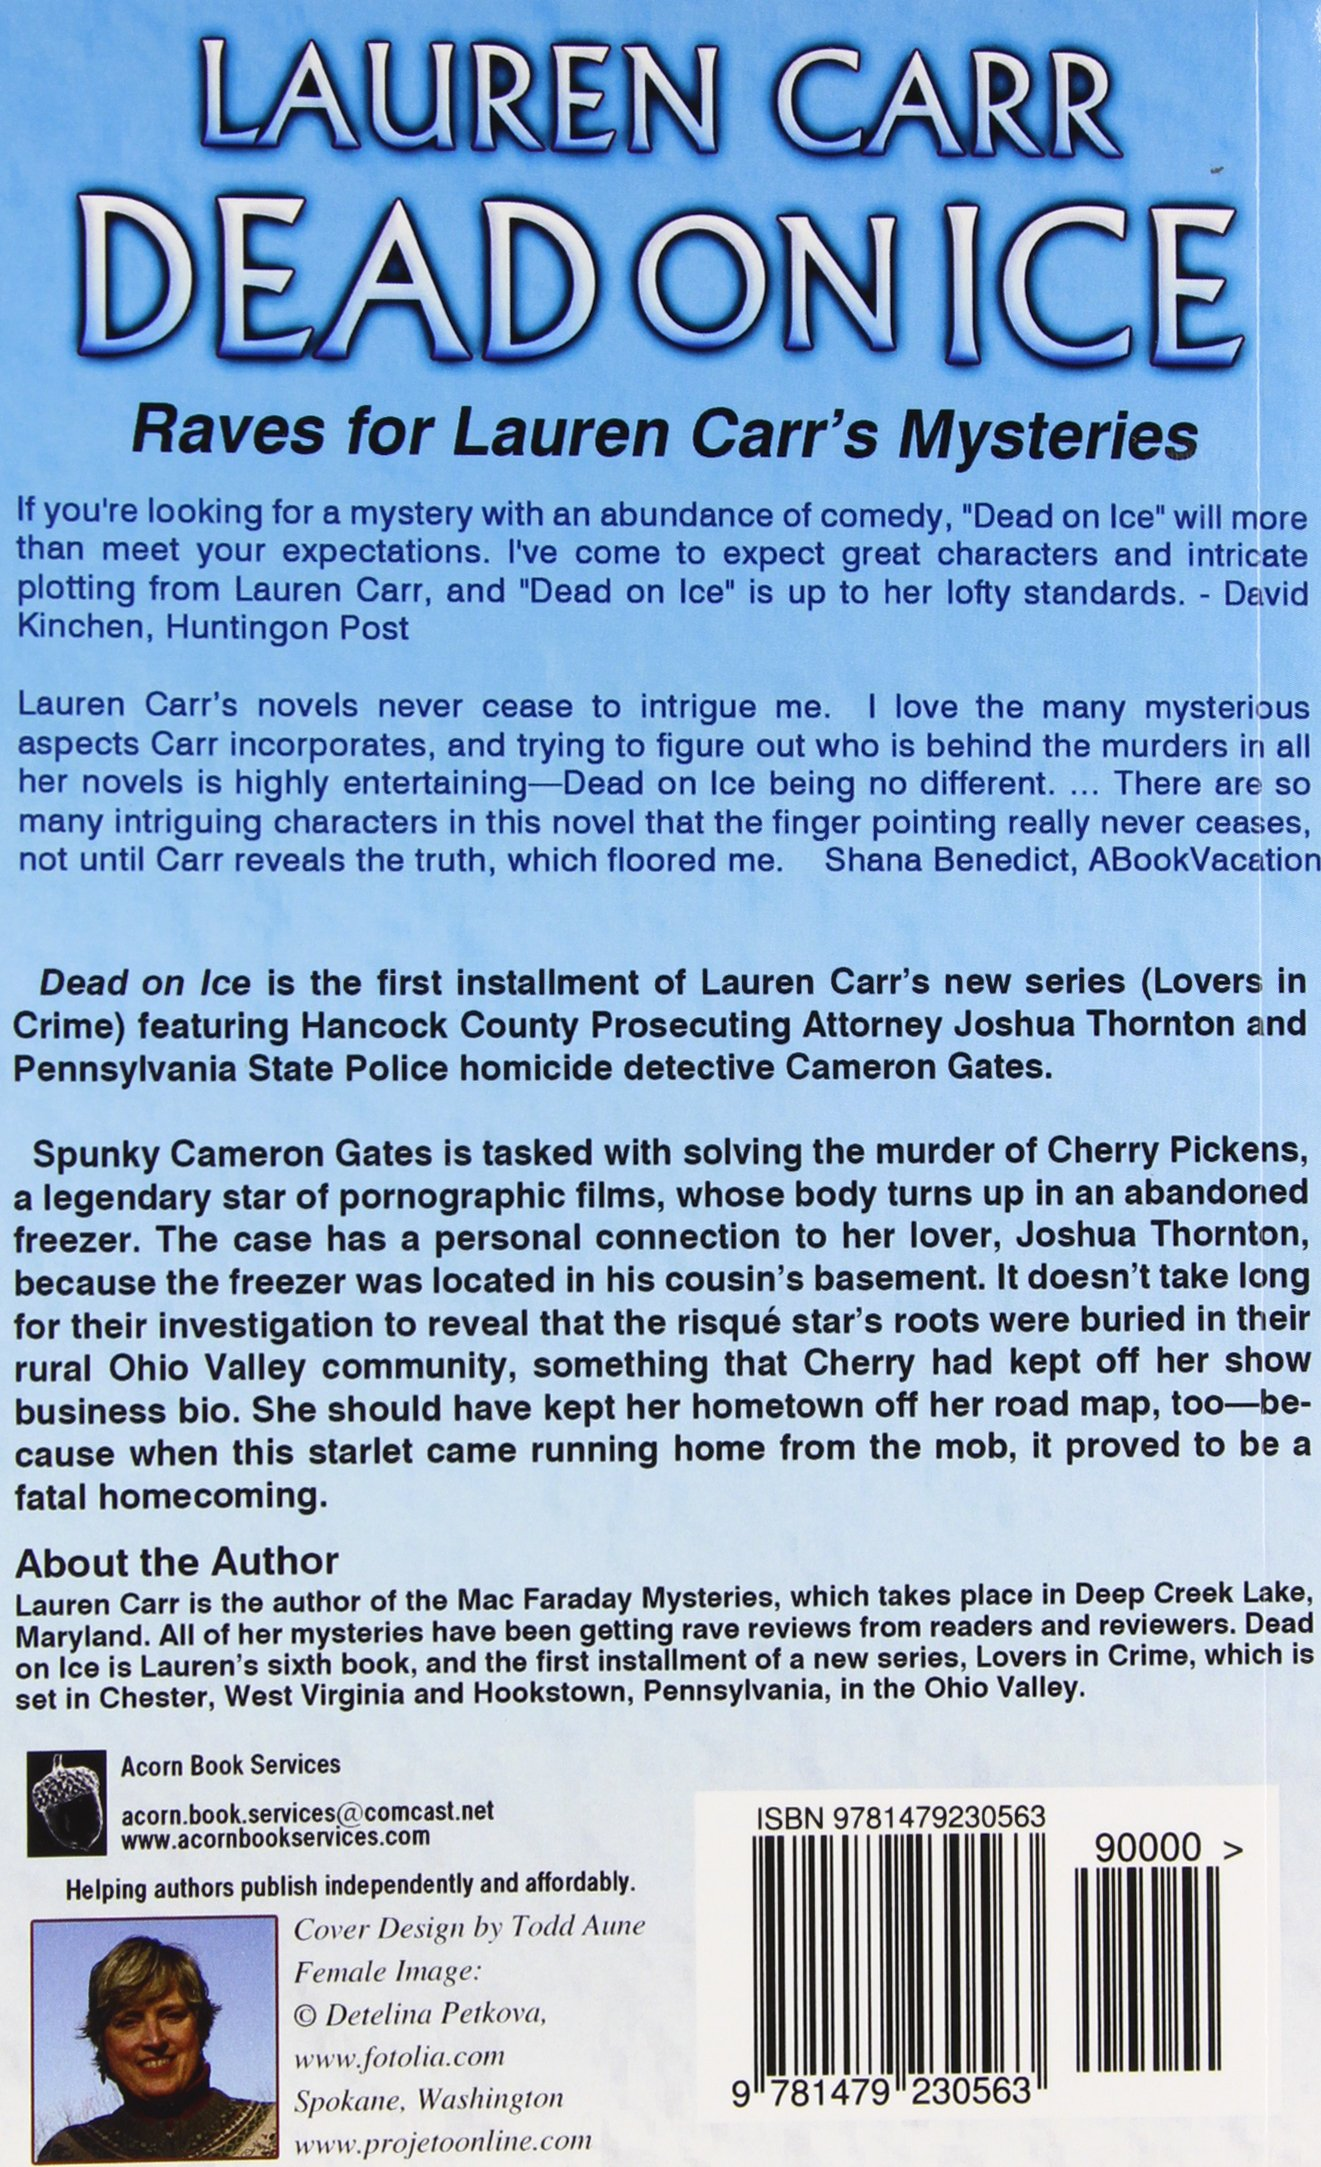 Dead on ice lovers in crime mystery lauren carr 9781479230563 dead on ice lovers in crime mystery lauren carr 9781479230563 amazon books fandeluxe Ebook collections